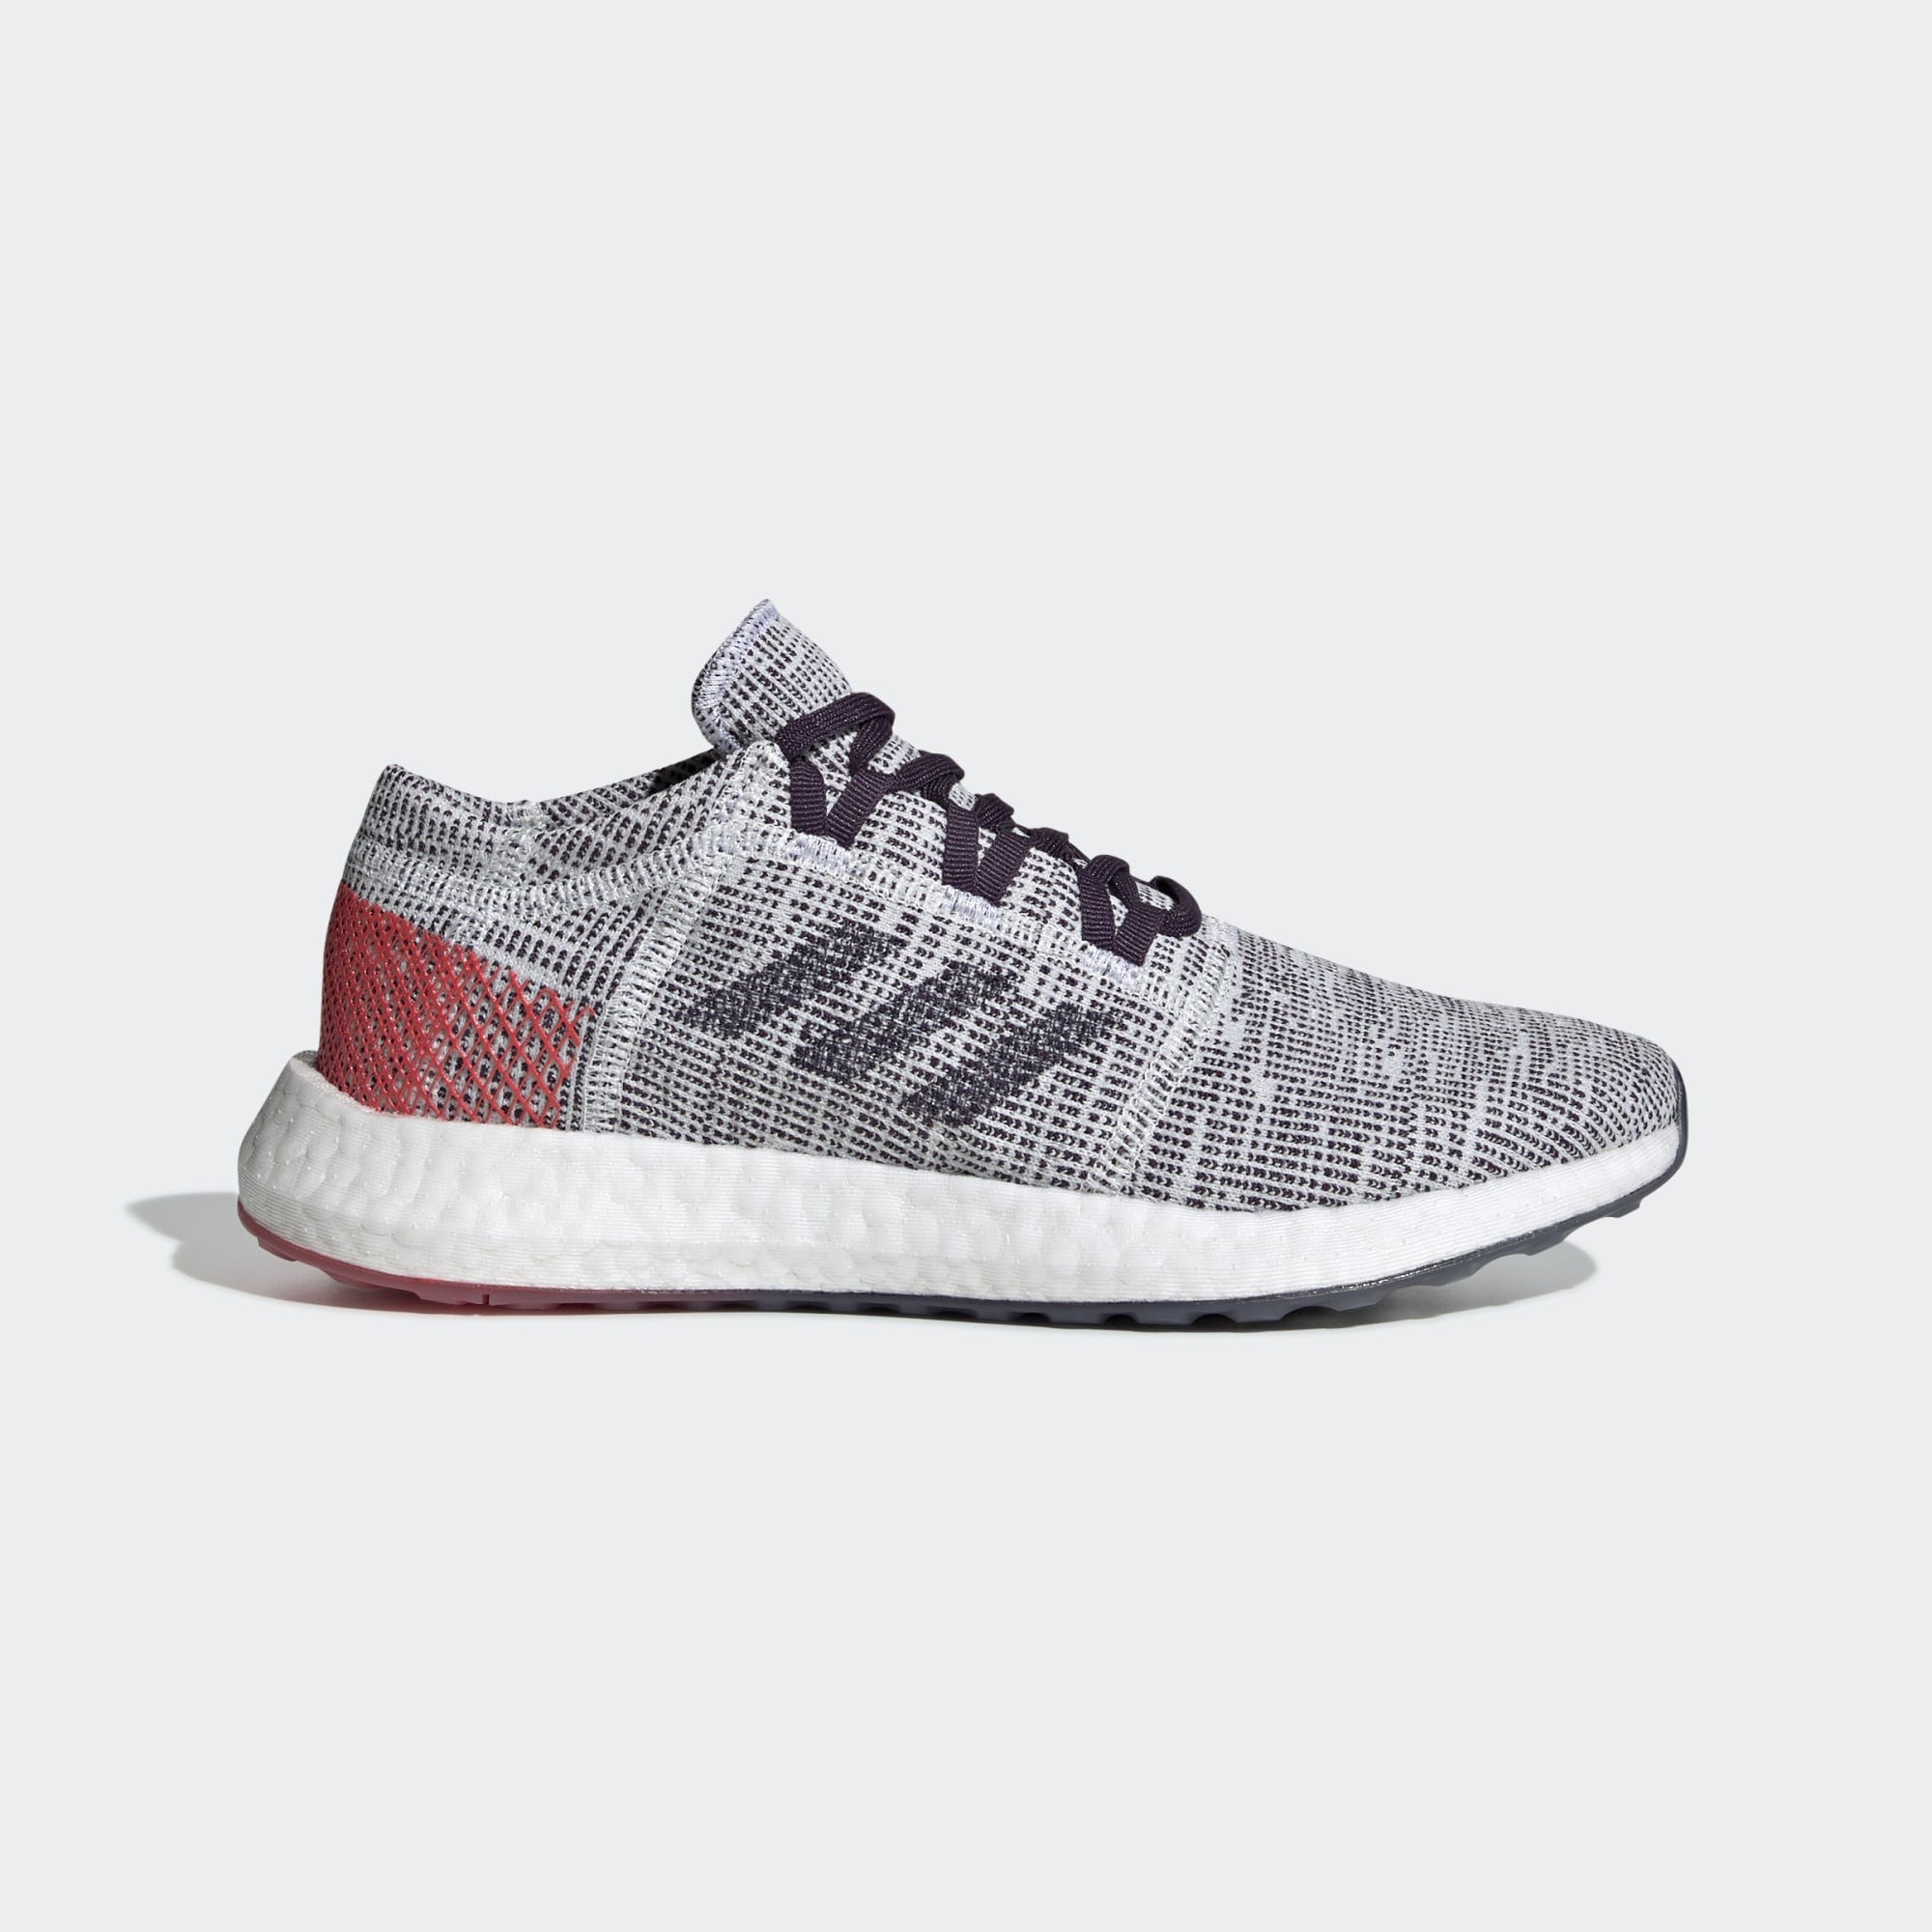 adidas Pureboost Go Shoes Women Cloud White/Legend Purple/Shock Red B75826